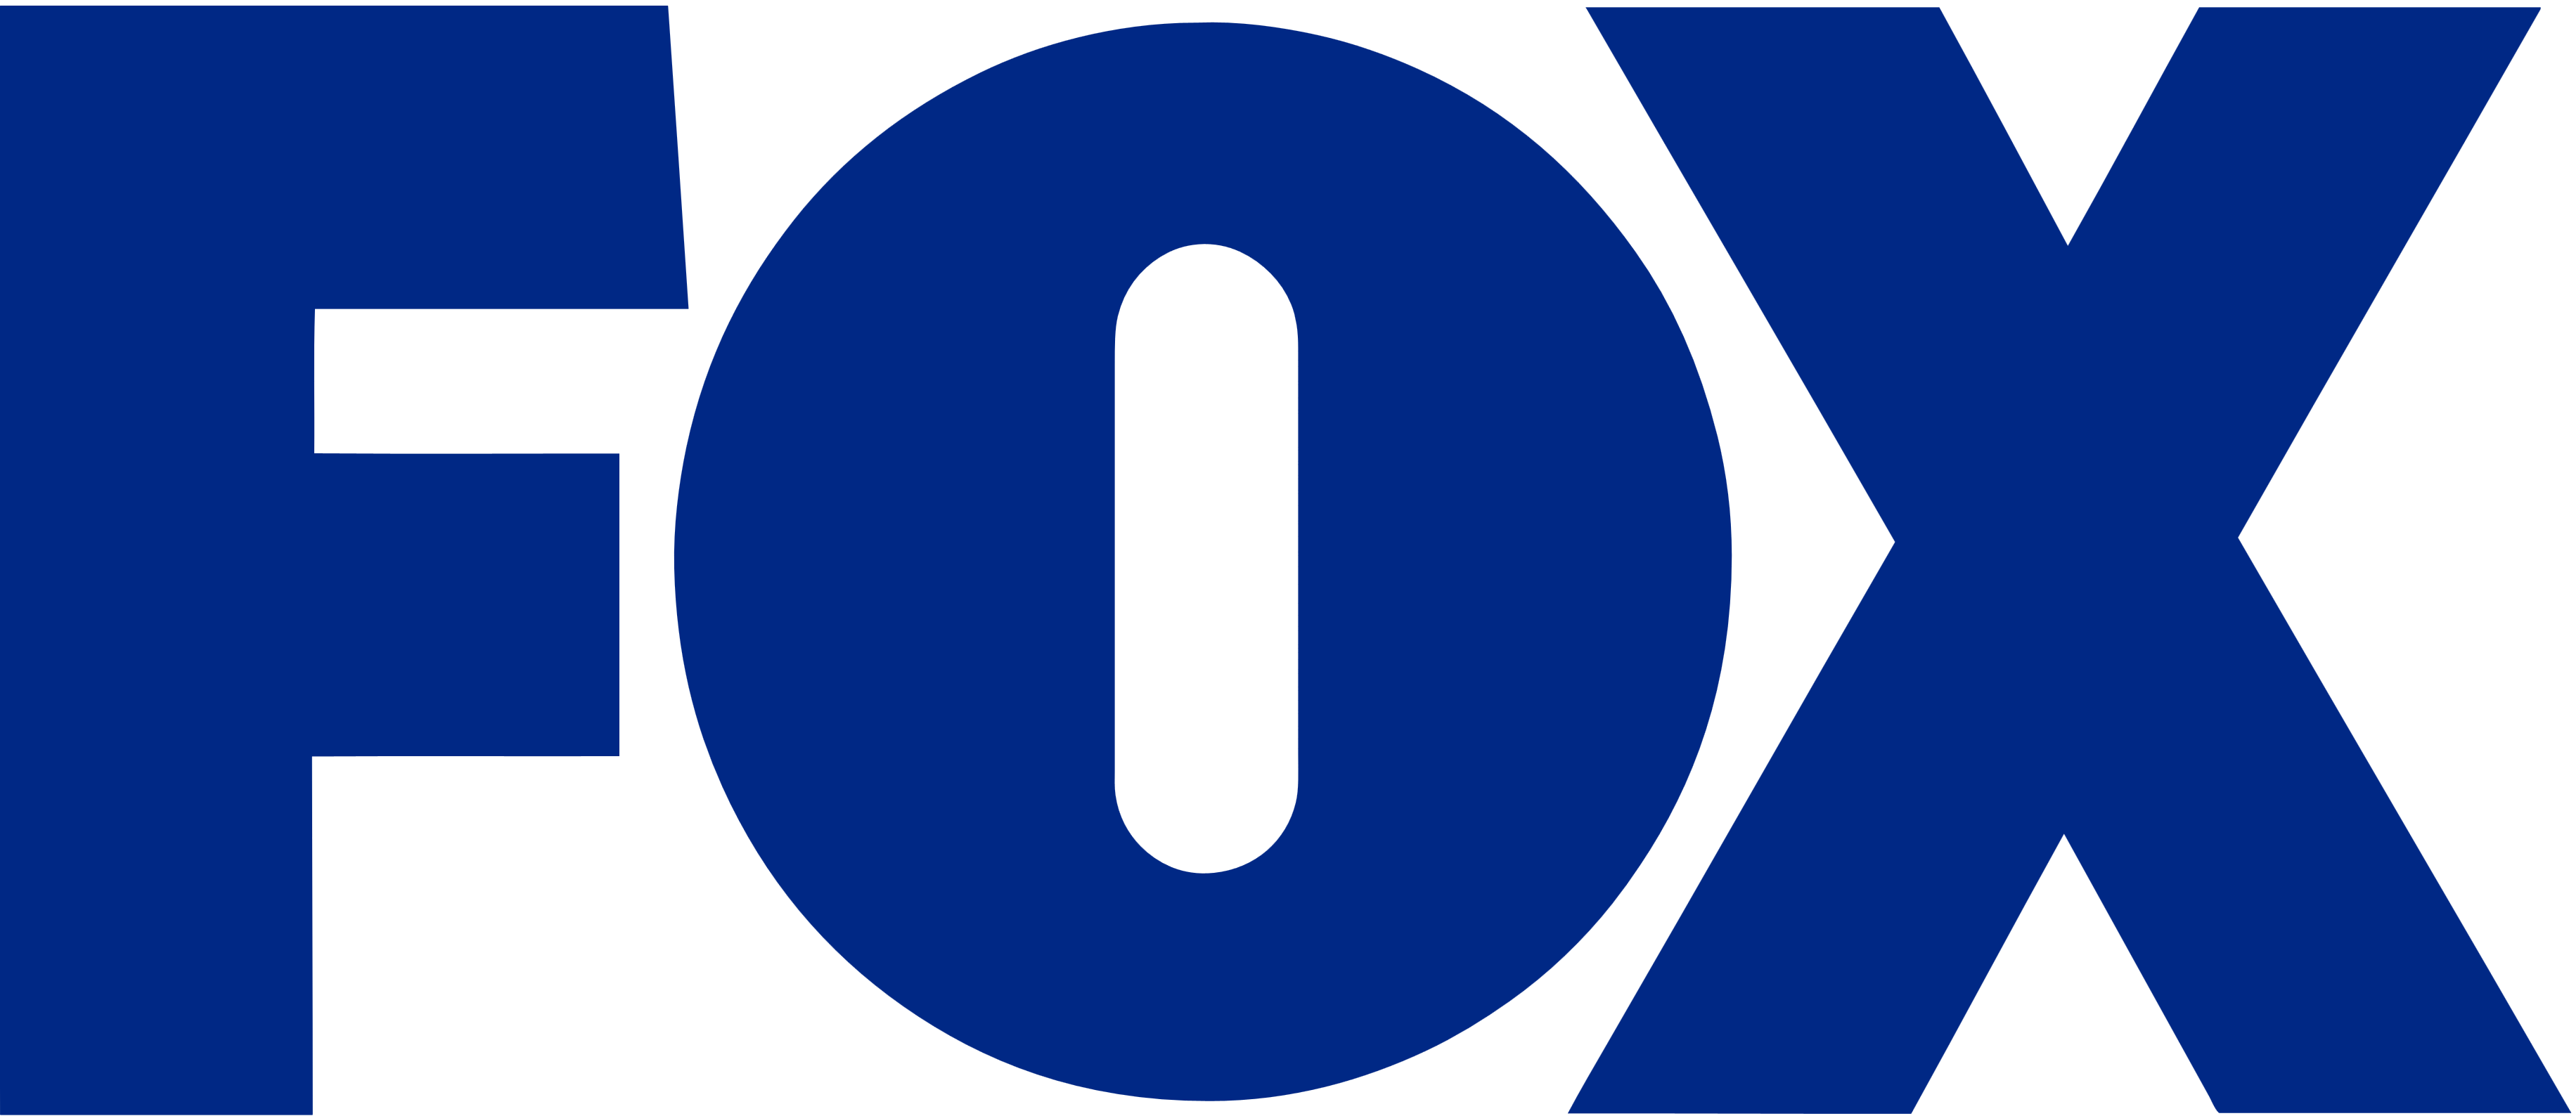 Hd Fox Blue Logo Png 1629 Free Transparent Png Logos